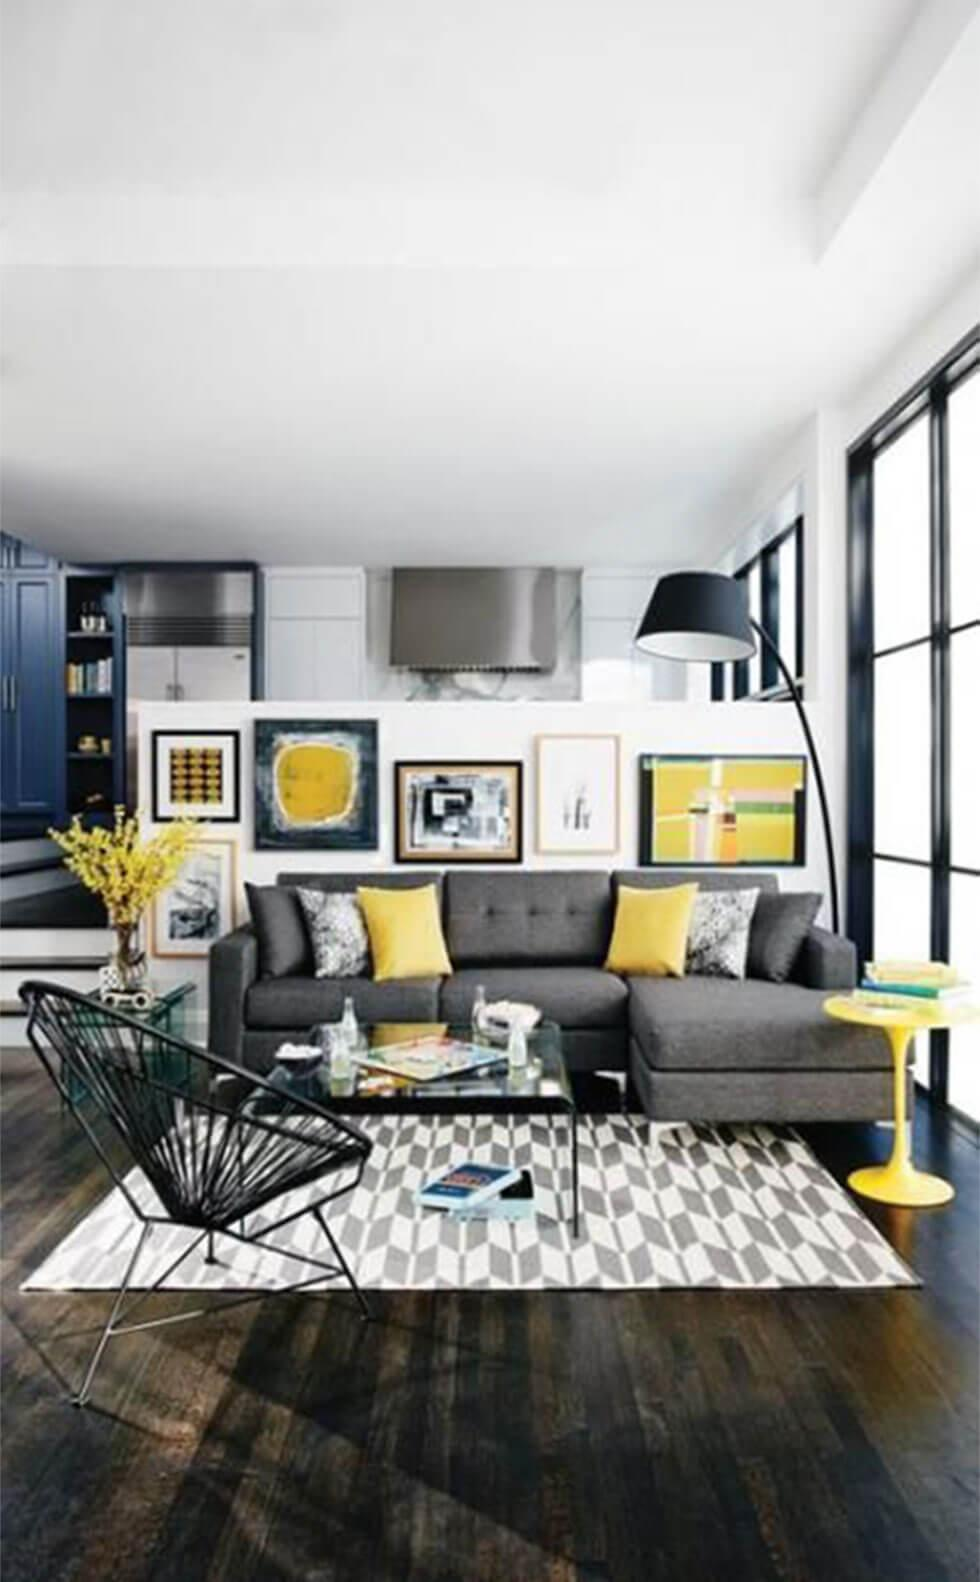 Colourful living room with grey fabric sofa